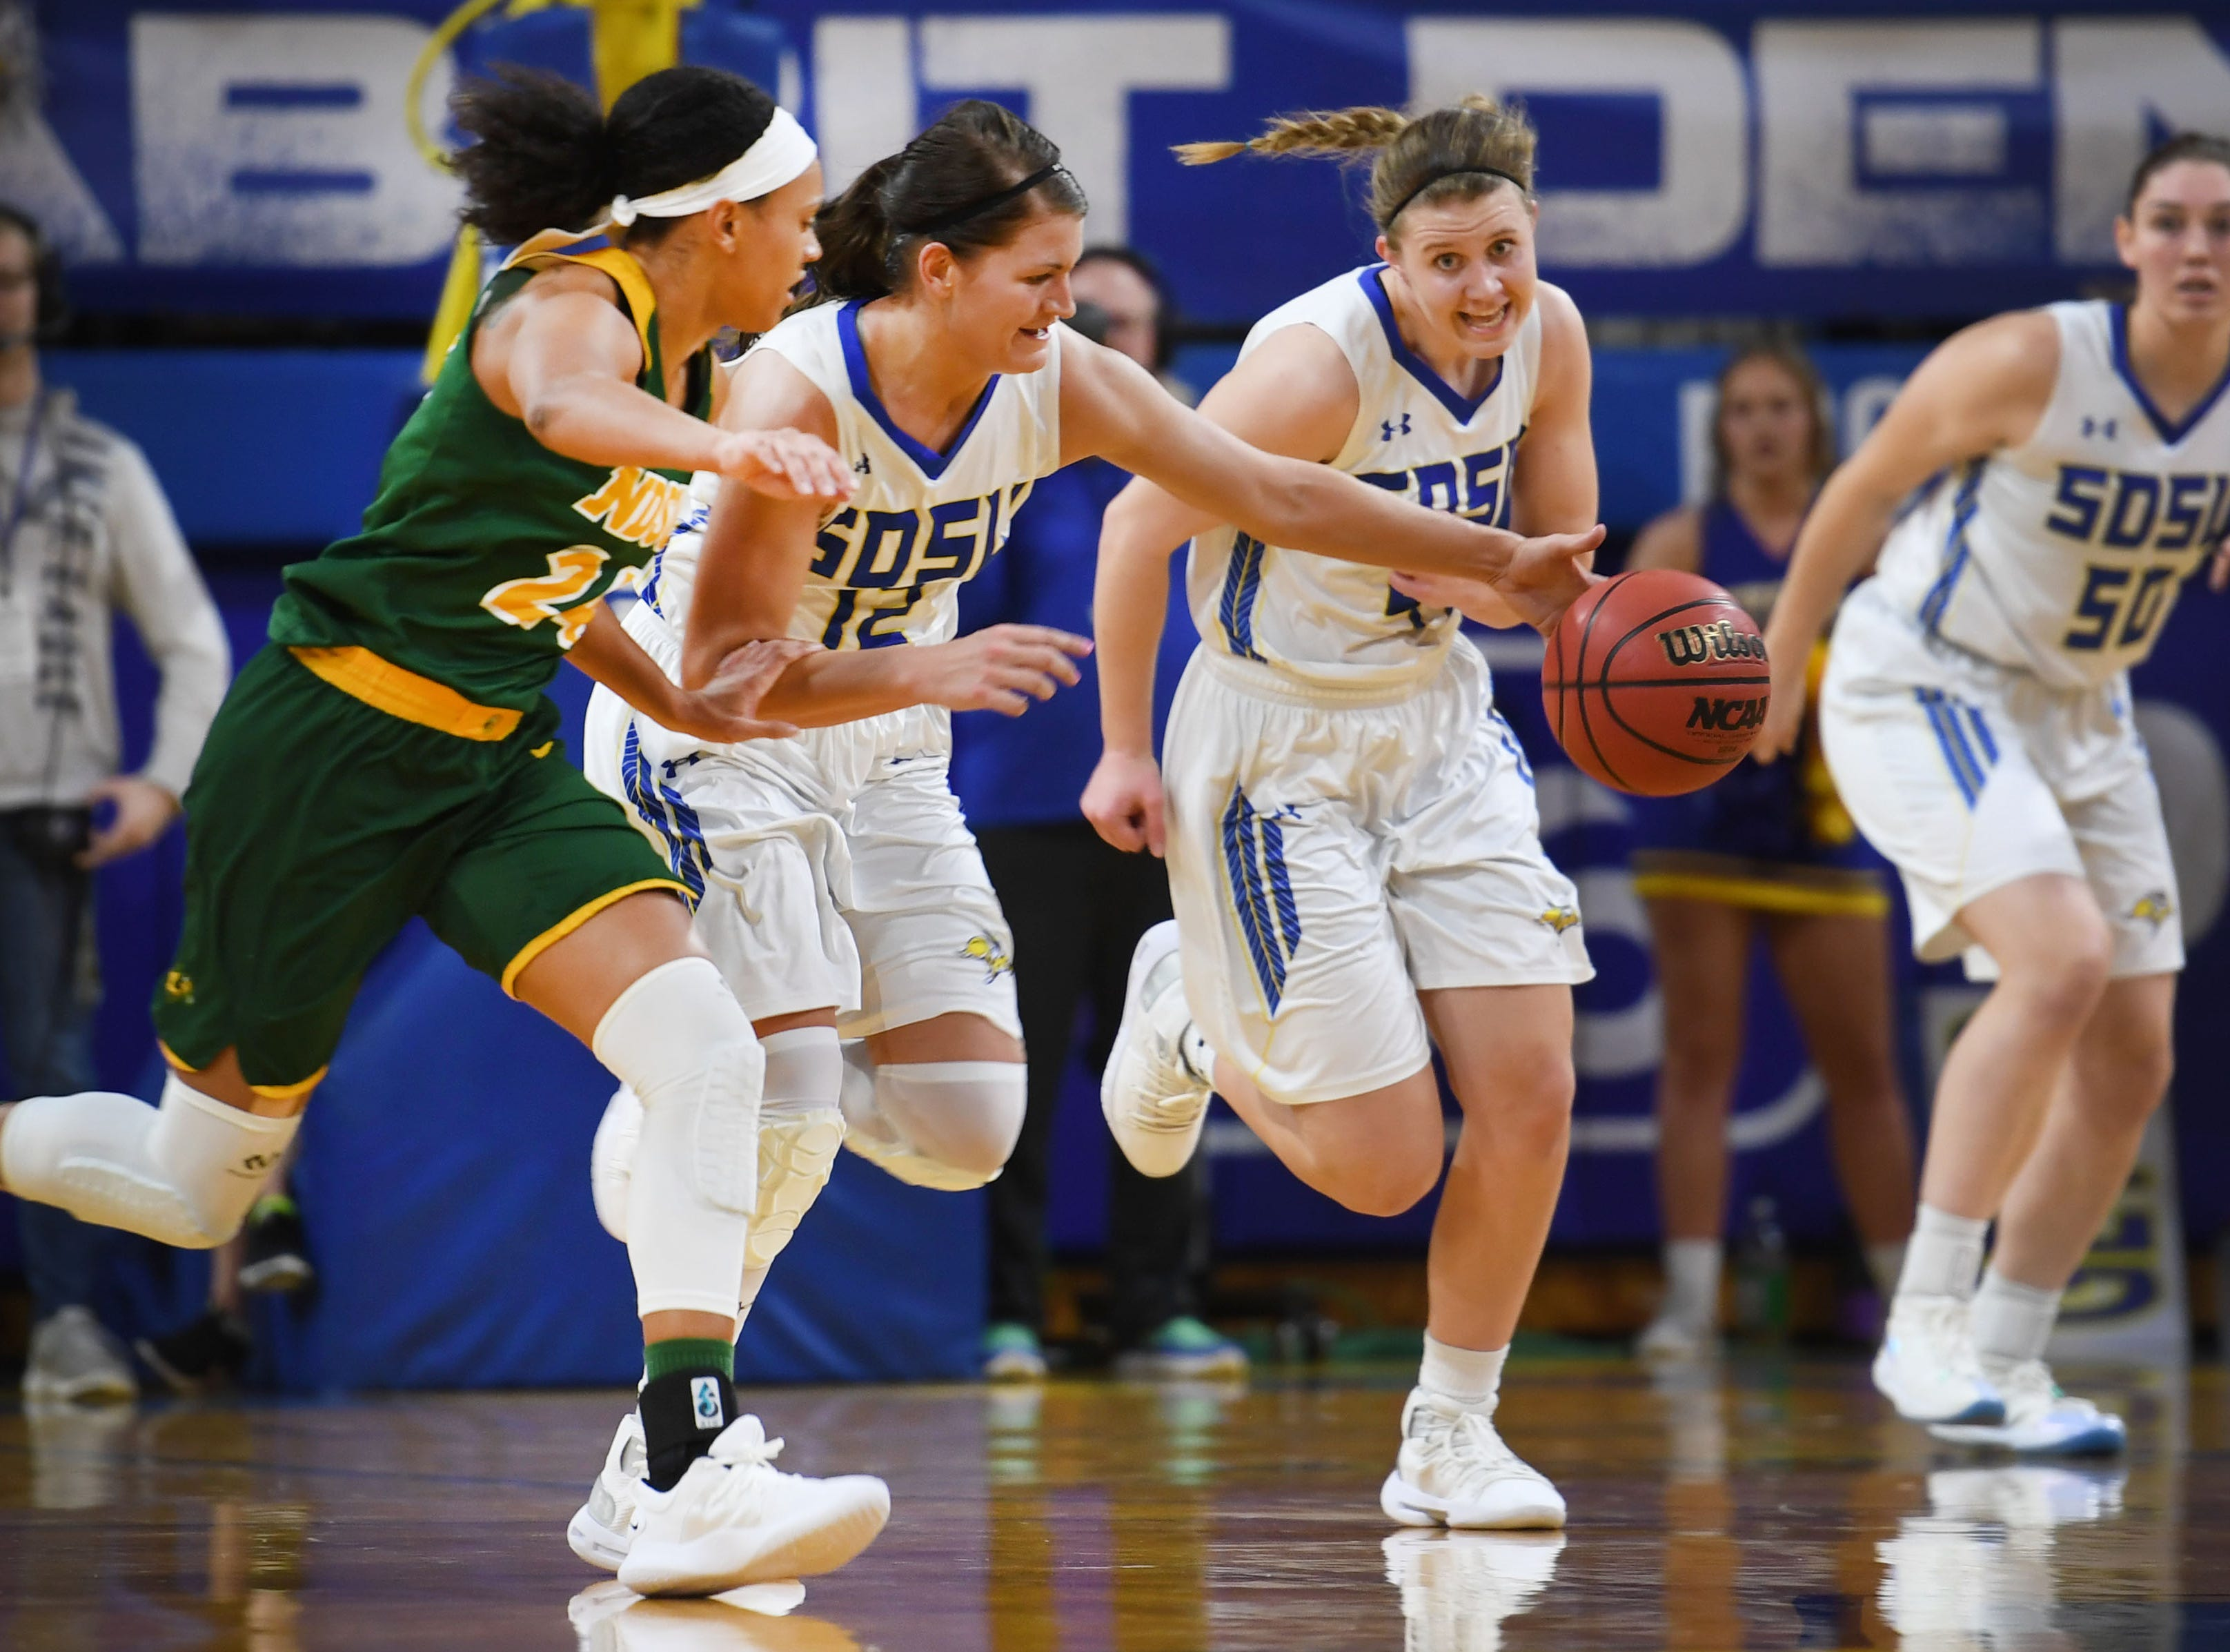 SDSU's Macy Miller runs up the court to gain control of the ball against NDSU's Tyrah Spencer during the game Wednesday, Jan. 23, at Frost Arena in Brookings.